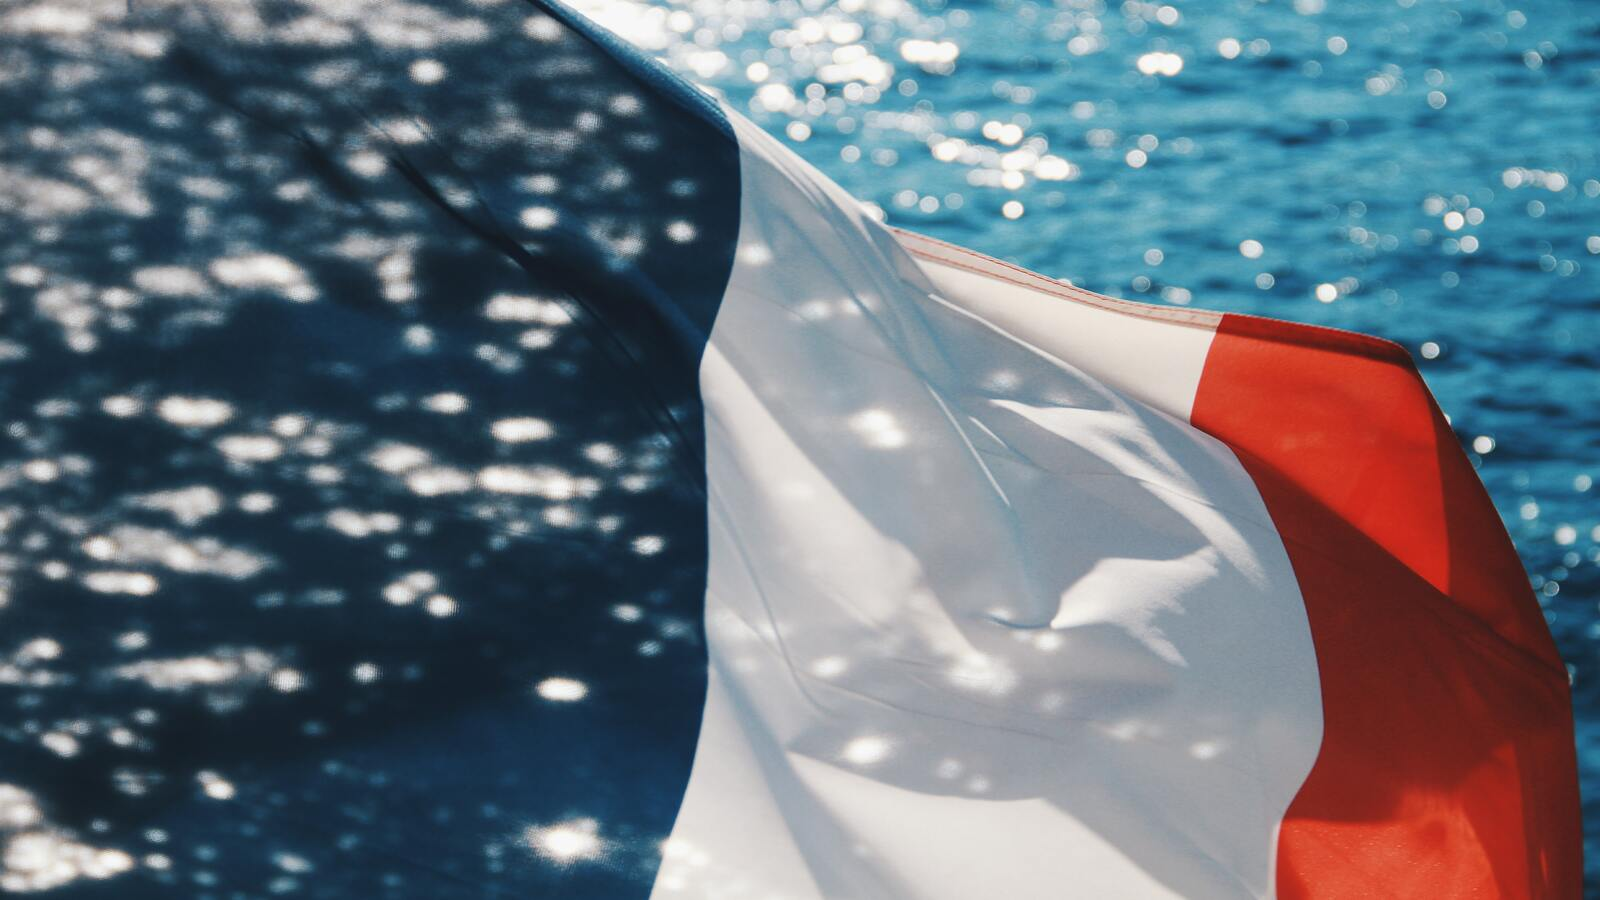 French Tenses For Beginners (With Examples)